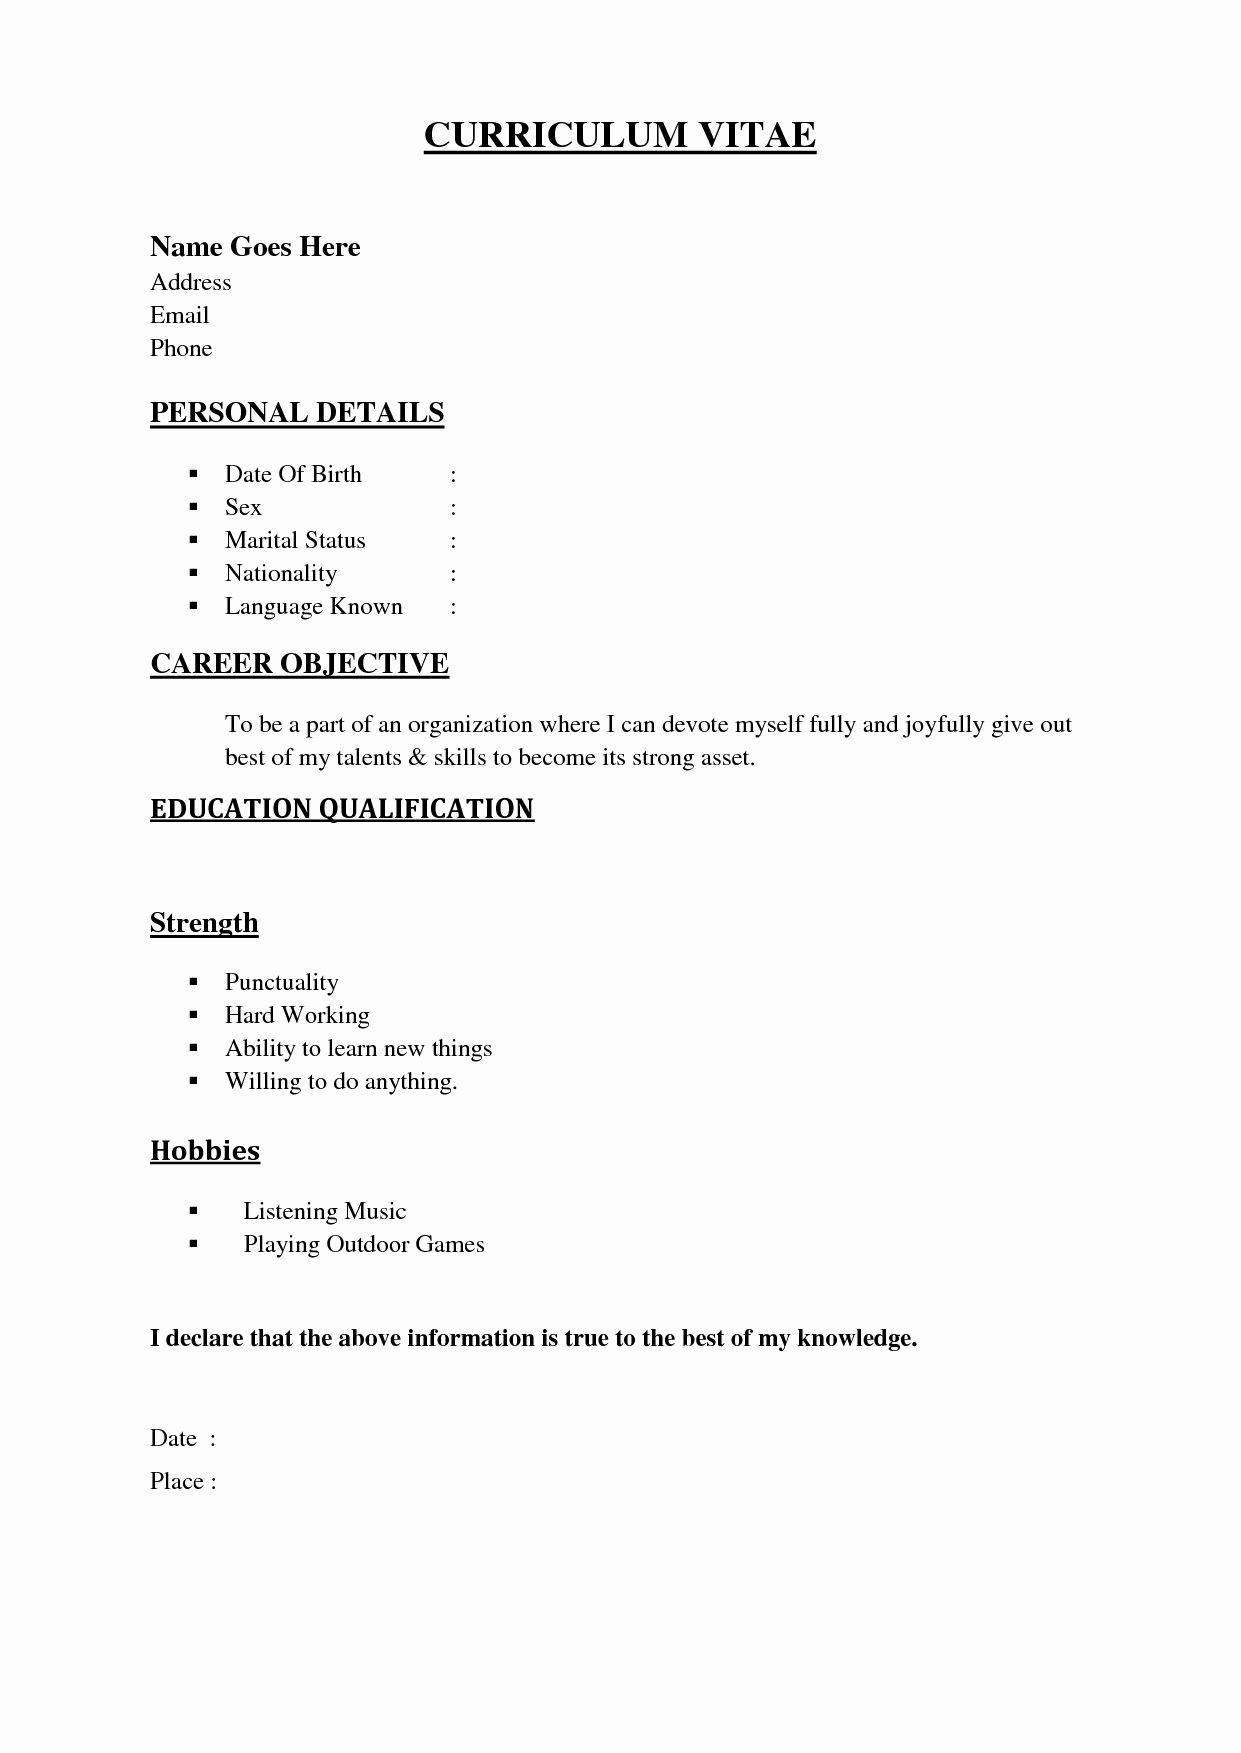 Simple Resume Examples For Jobs Elegant Resume Resume In 2020 Basic Resume Basic Resume Format Simple Resume Sample